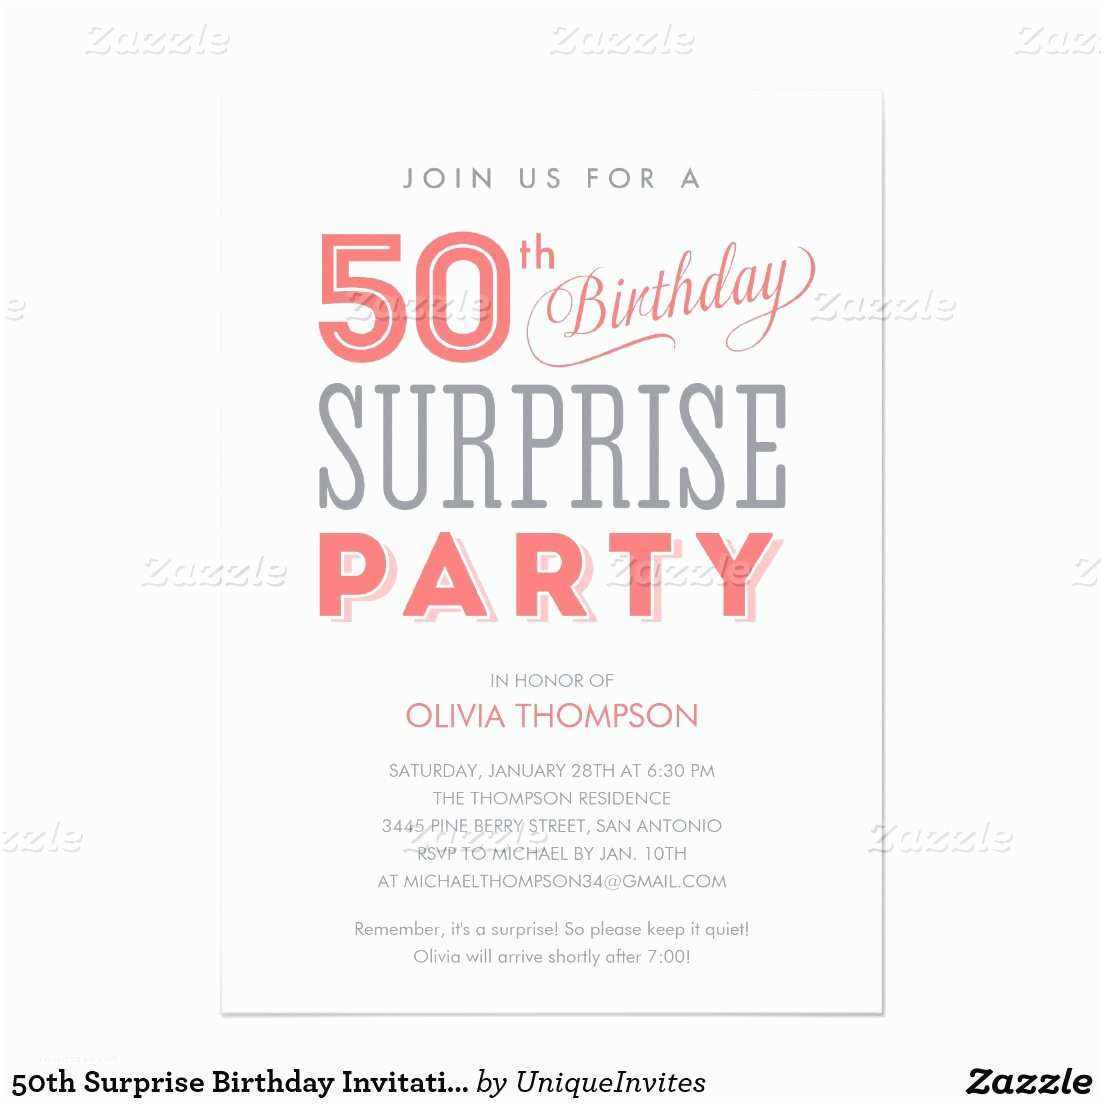 50th Birthday Invitation Wording Surprise 50th Birthday Party Invitation Wording